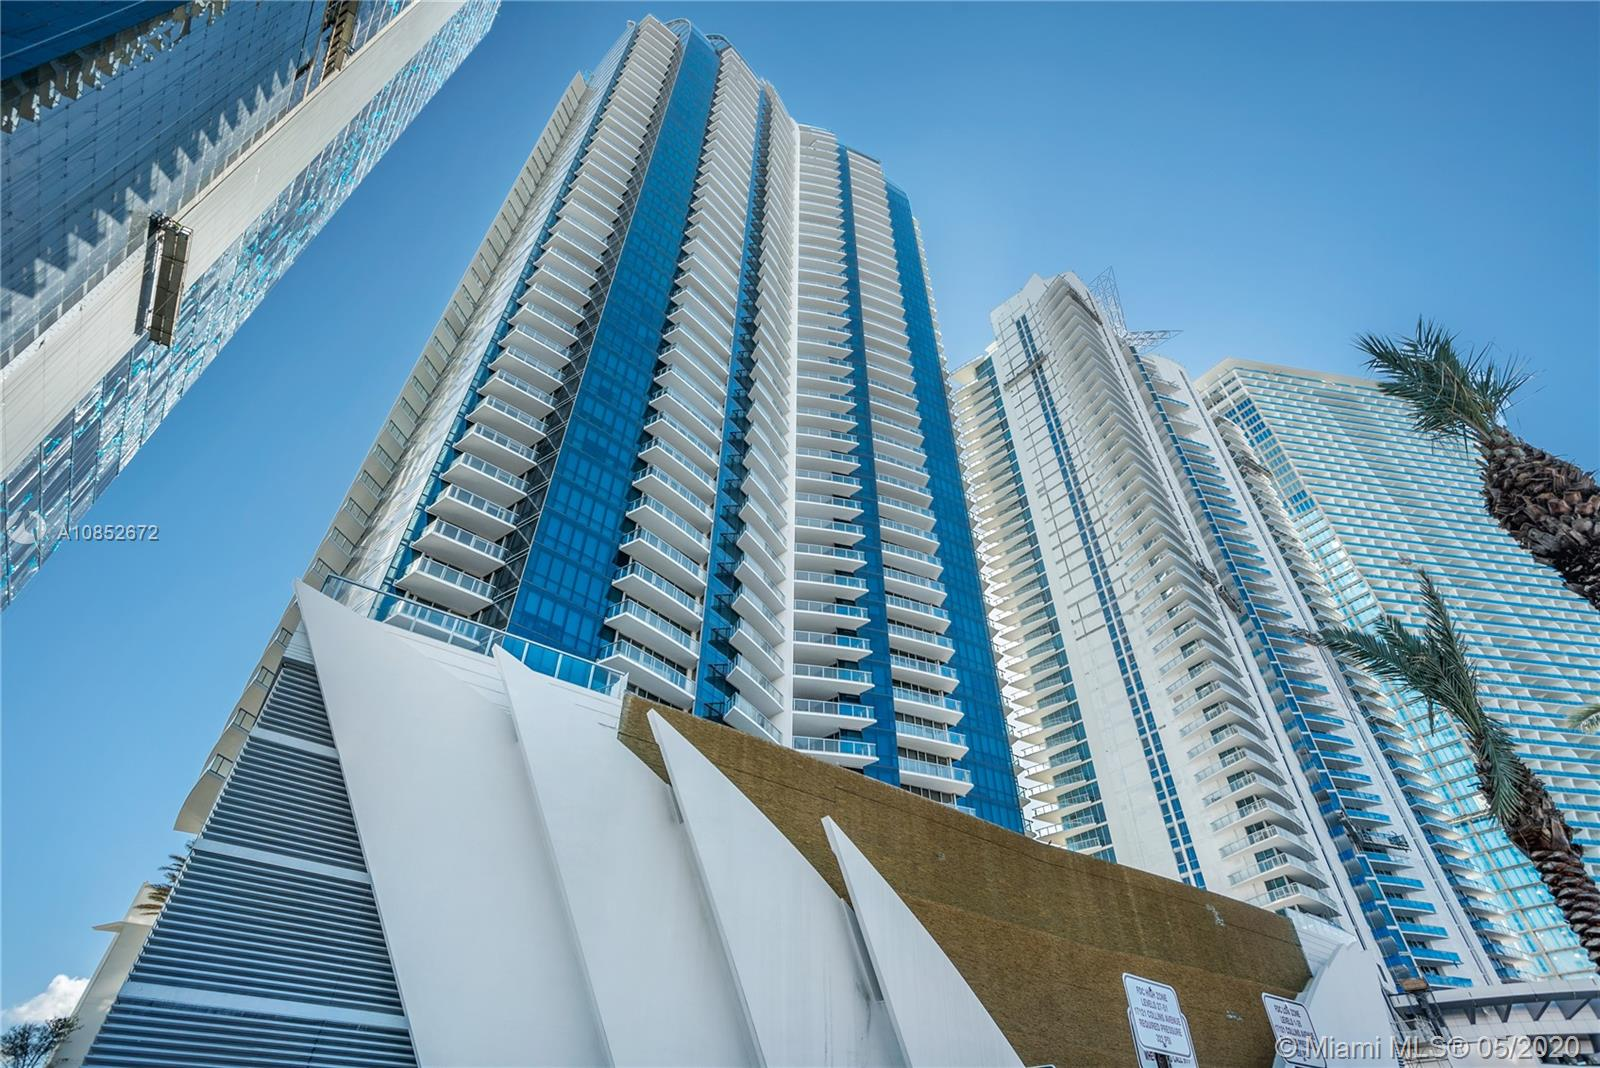 17121  Collins Ave #2703 For Sale A10852672, FL